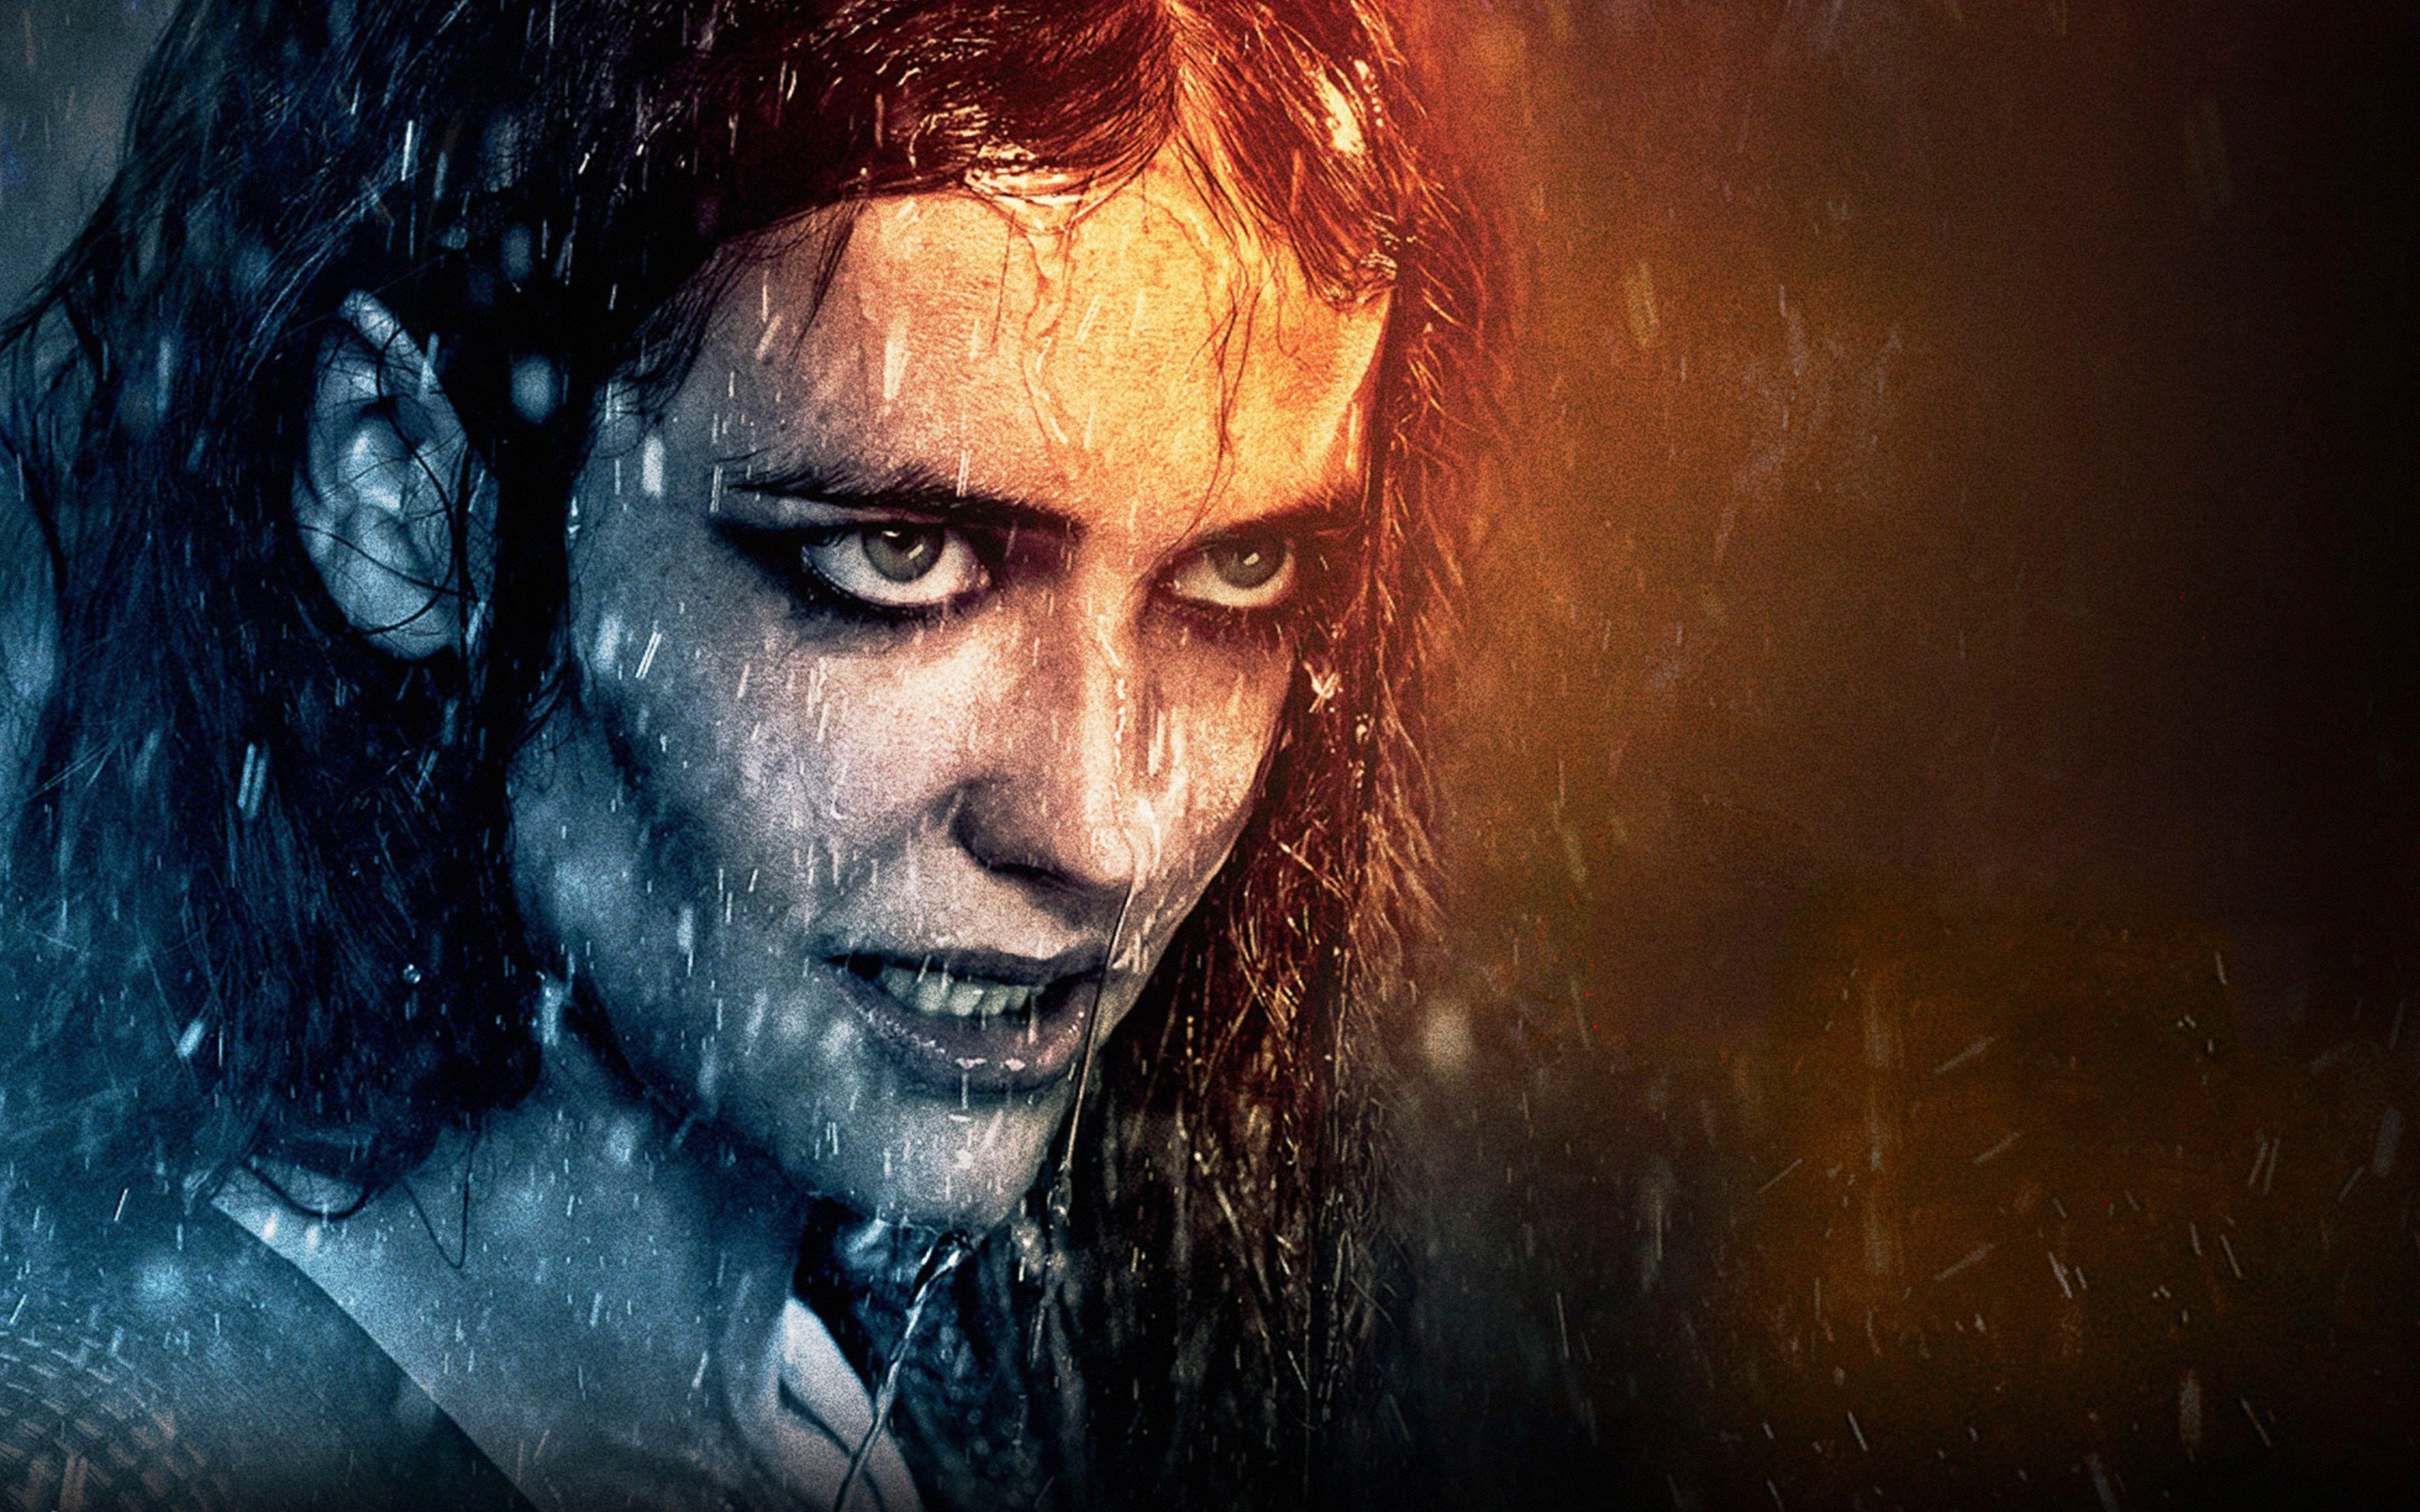 eva green 300 rise of an empire, hd movies, 4k wallpapers, images